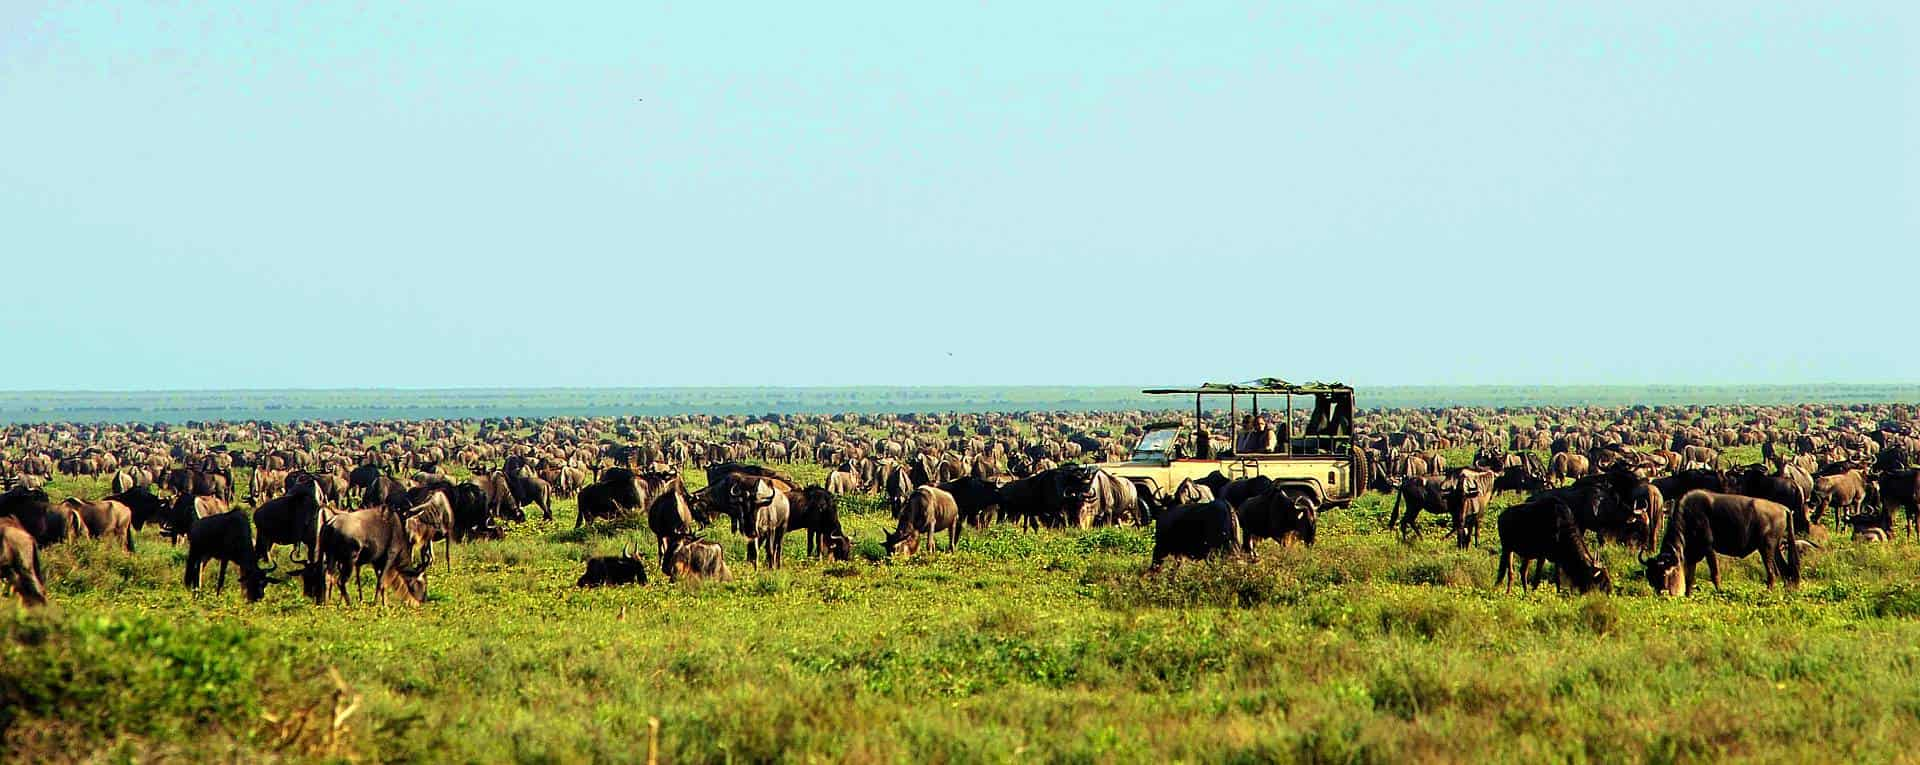 the great wildebeest migration - serengeti ndutu